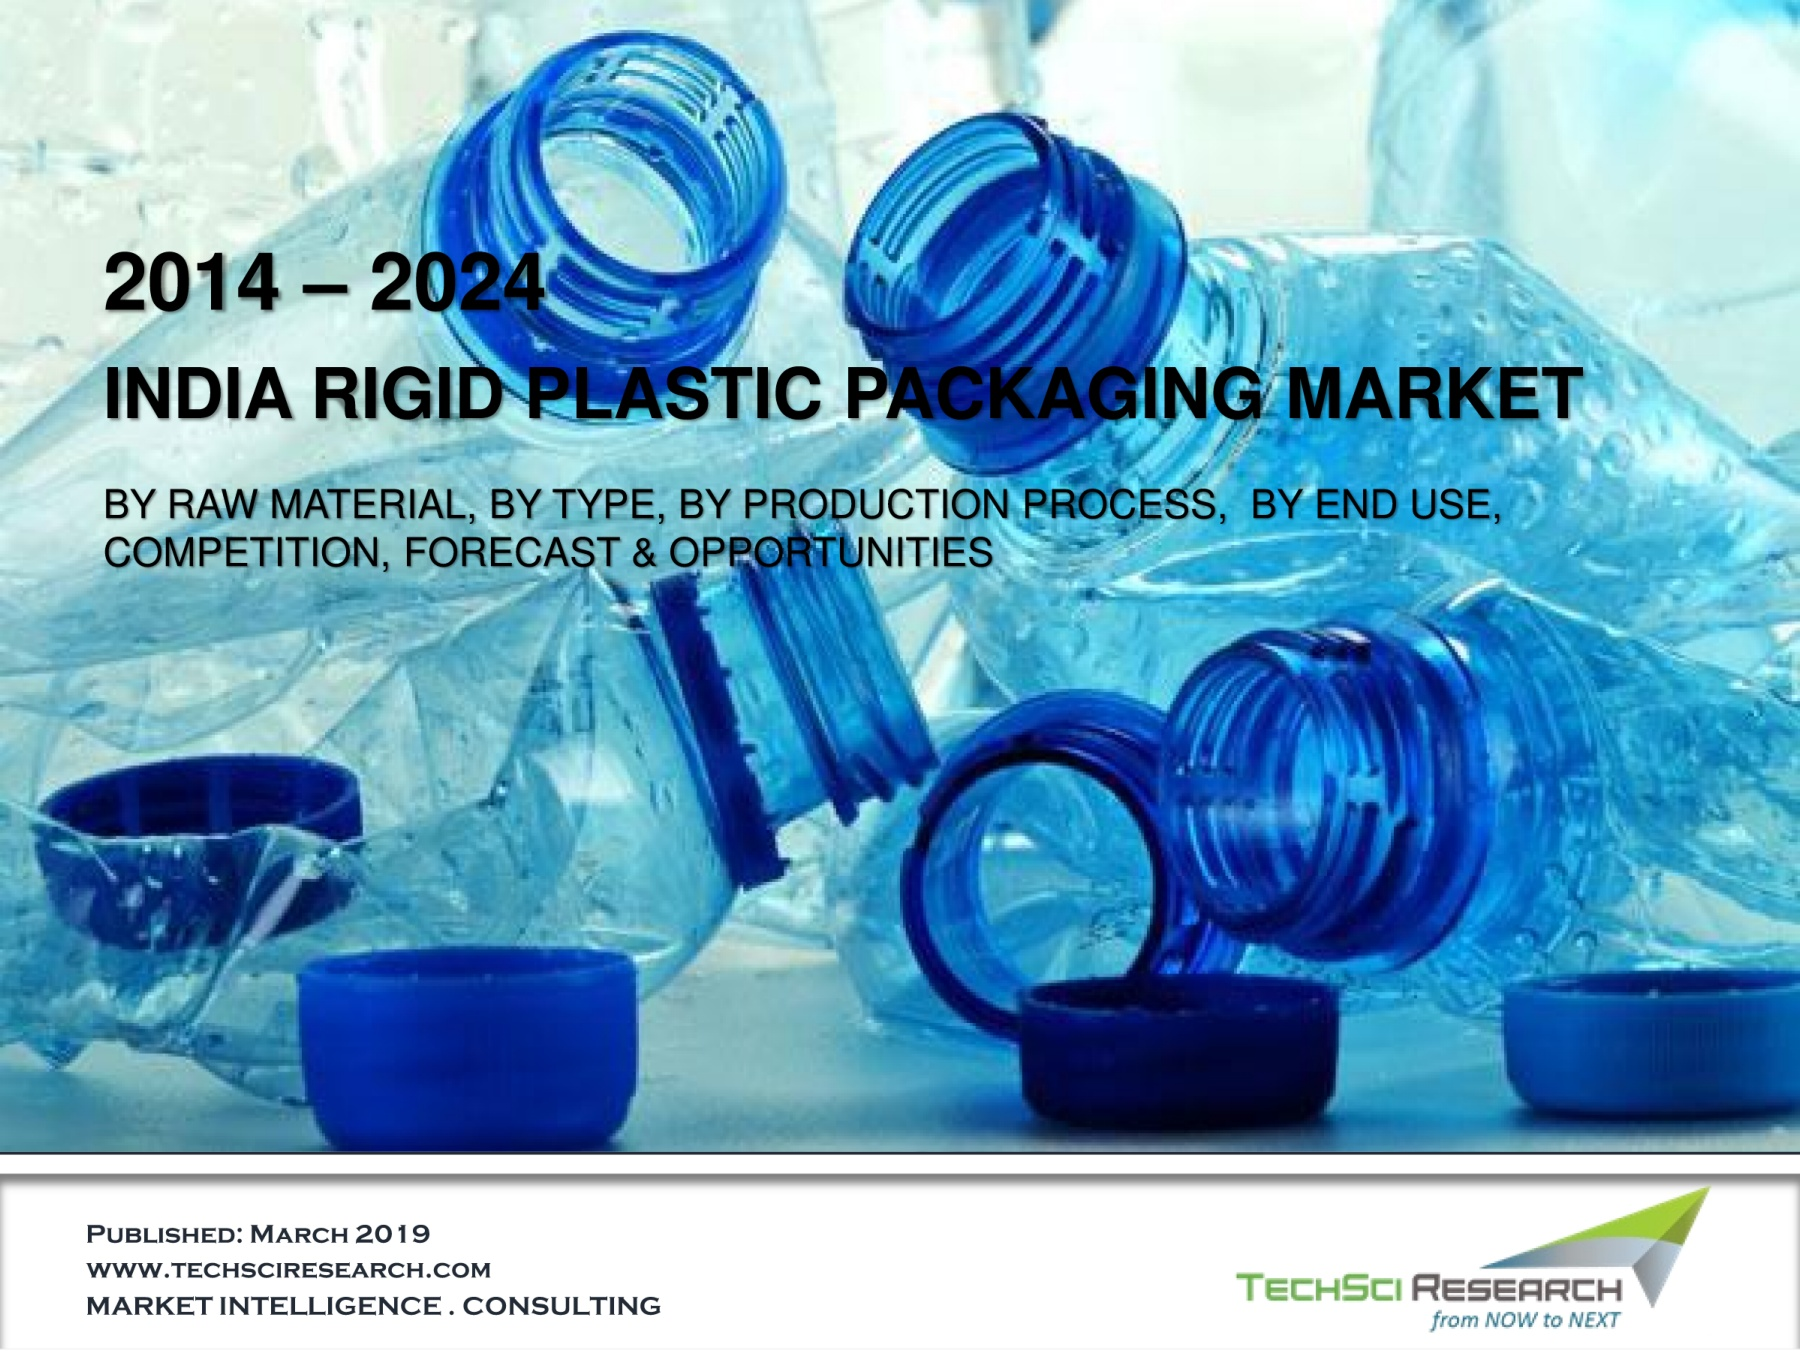 India Rigid Plastic Packaging Market is projected to grow at